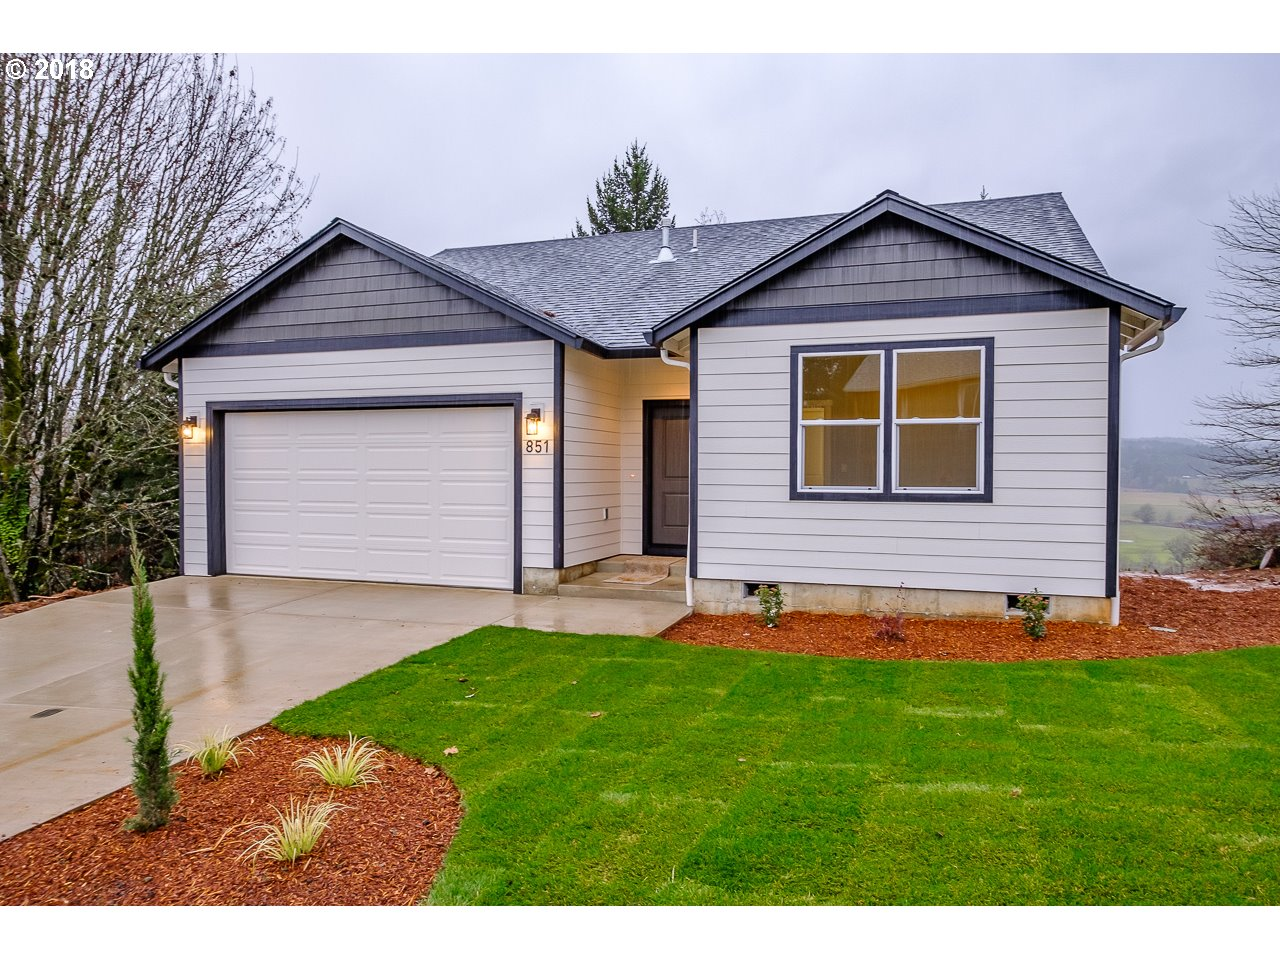 445 NW 6TH ST Willamina, OR 97396 - MLS #: 18112898